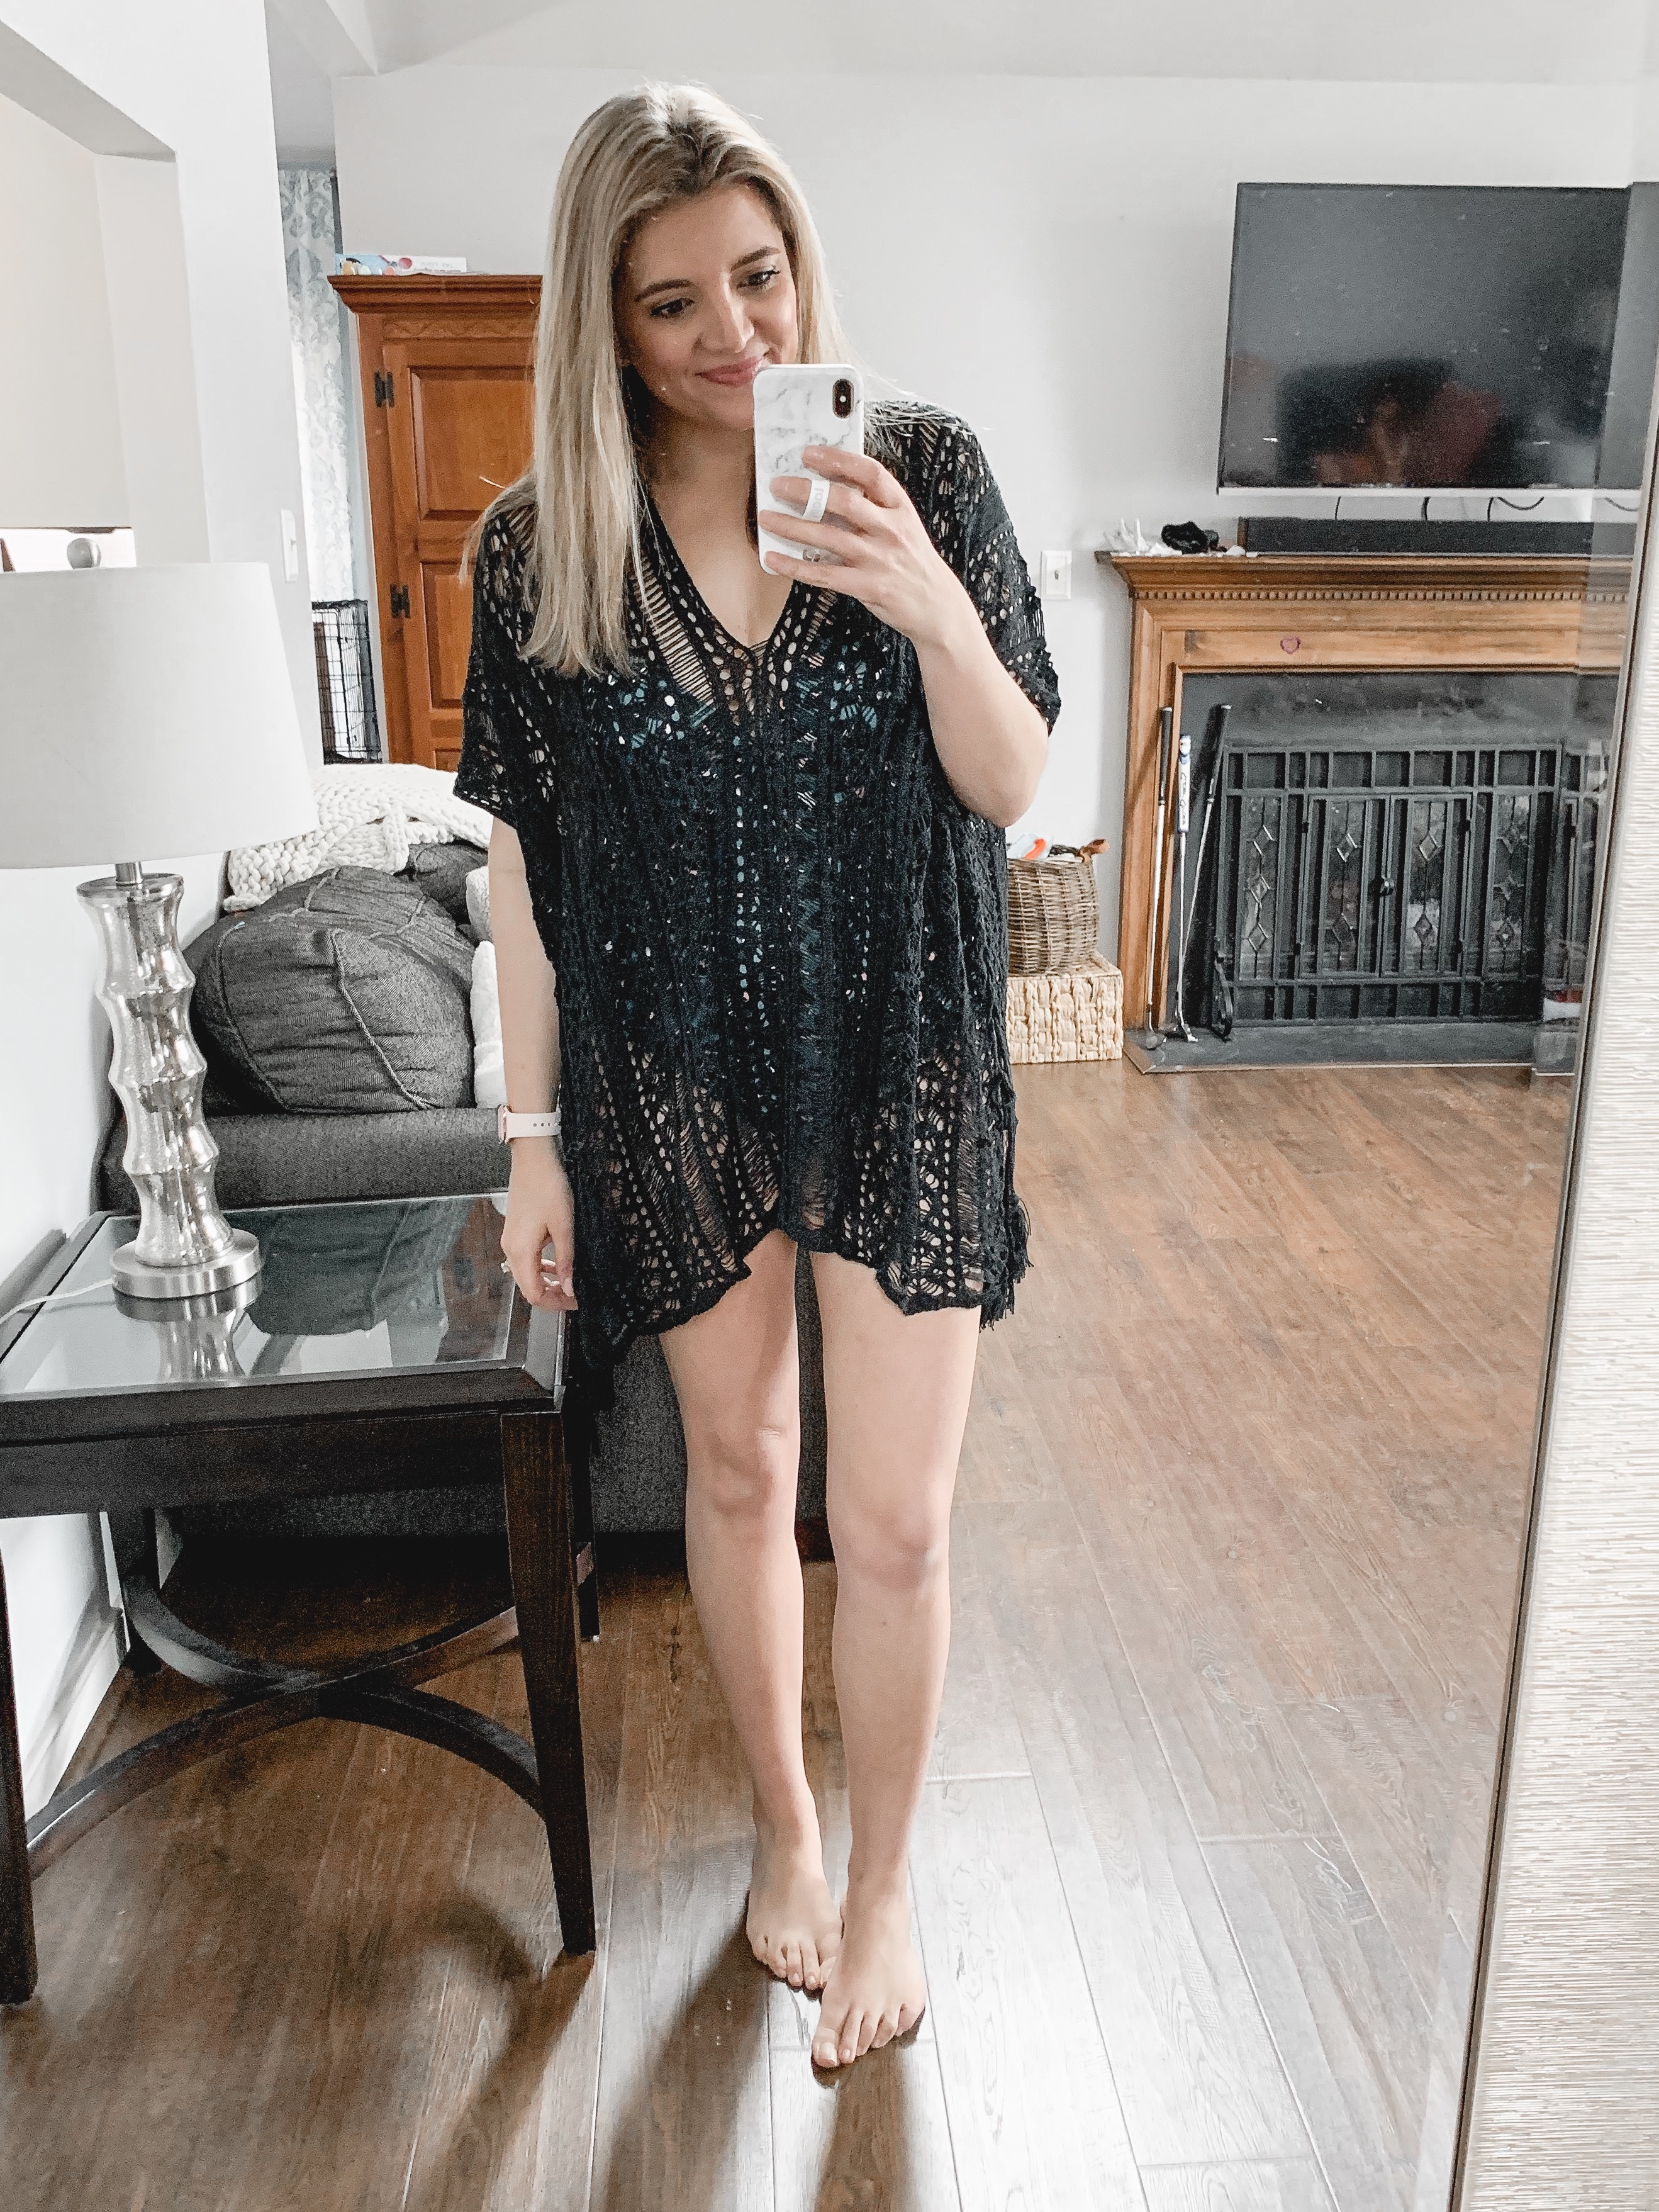 Affordable style blogger Lauren Dix shares over 25 of the best affordable one piece swimsuits and swimsuit cover ups!